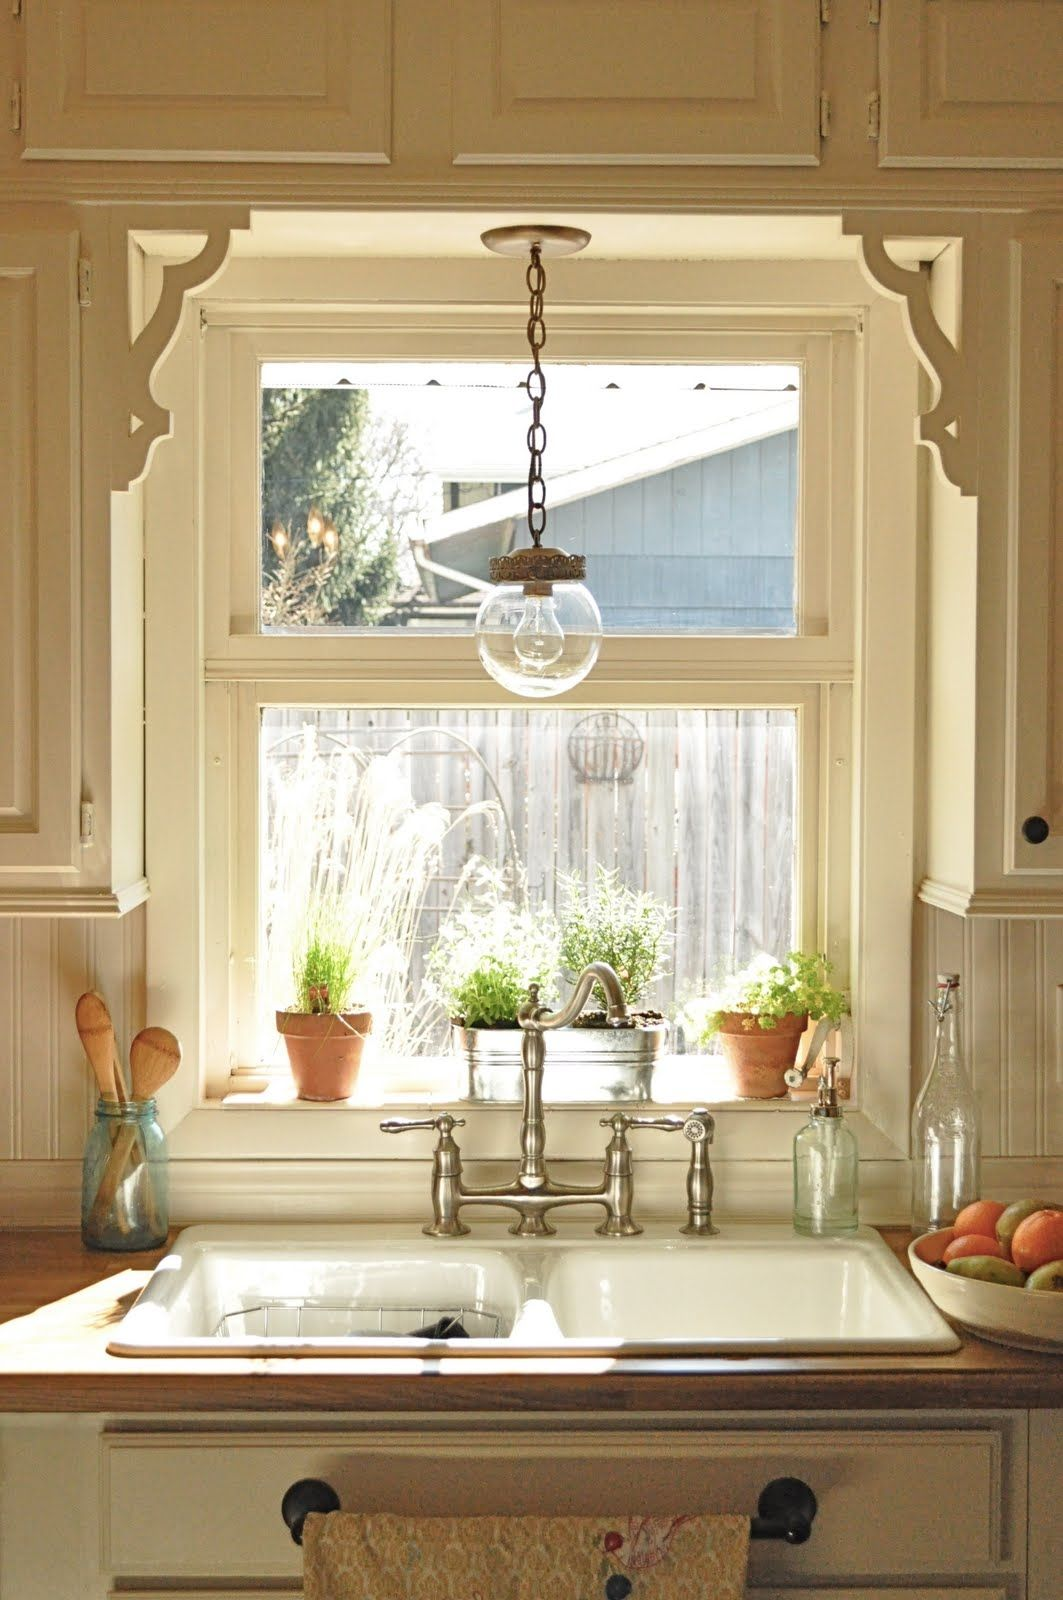 over kitchen sink task lighting home ideas in 2019 kitchen sink lighting kitchen sink on kitchen sink ideas id=70798